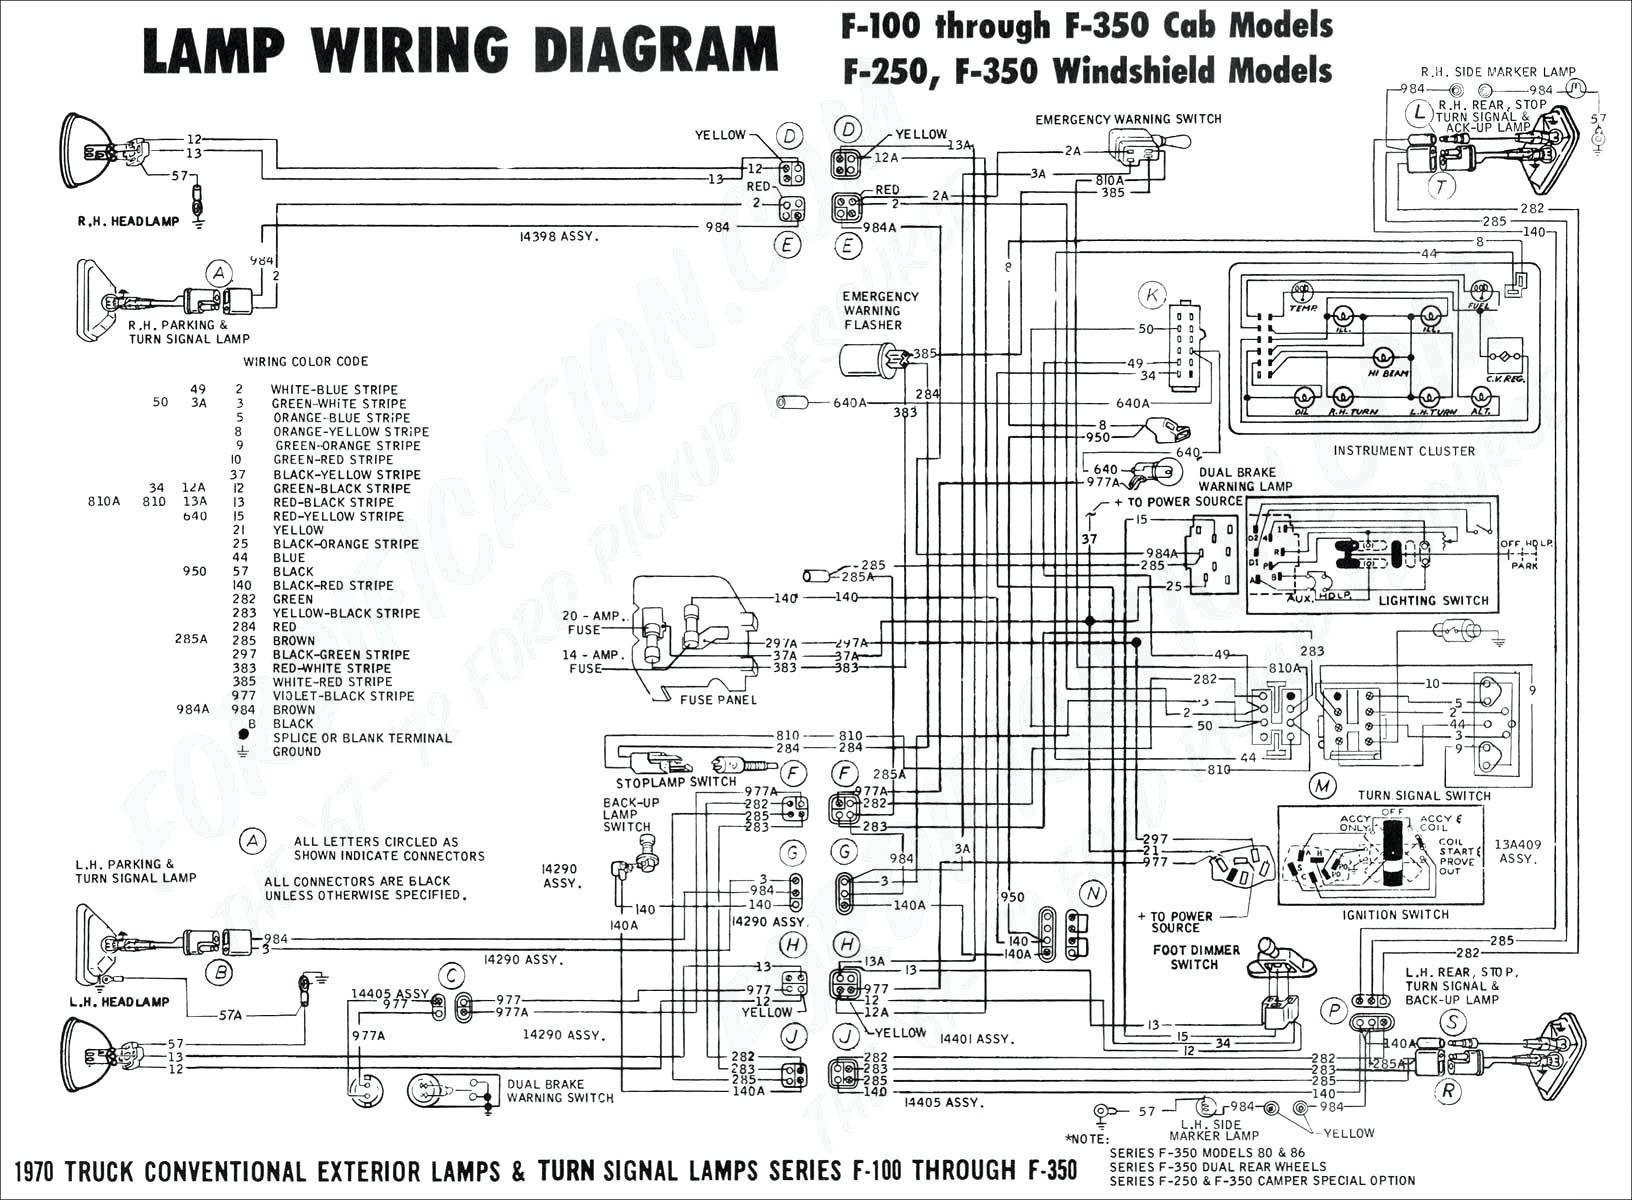 Truck Trailer Plug Wiring Diagram Wiring Diagram for Trailer Plug Nz Fresh Semi Trailer Light Wiring Of Truck Trailer Plug Wiring Diagram